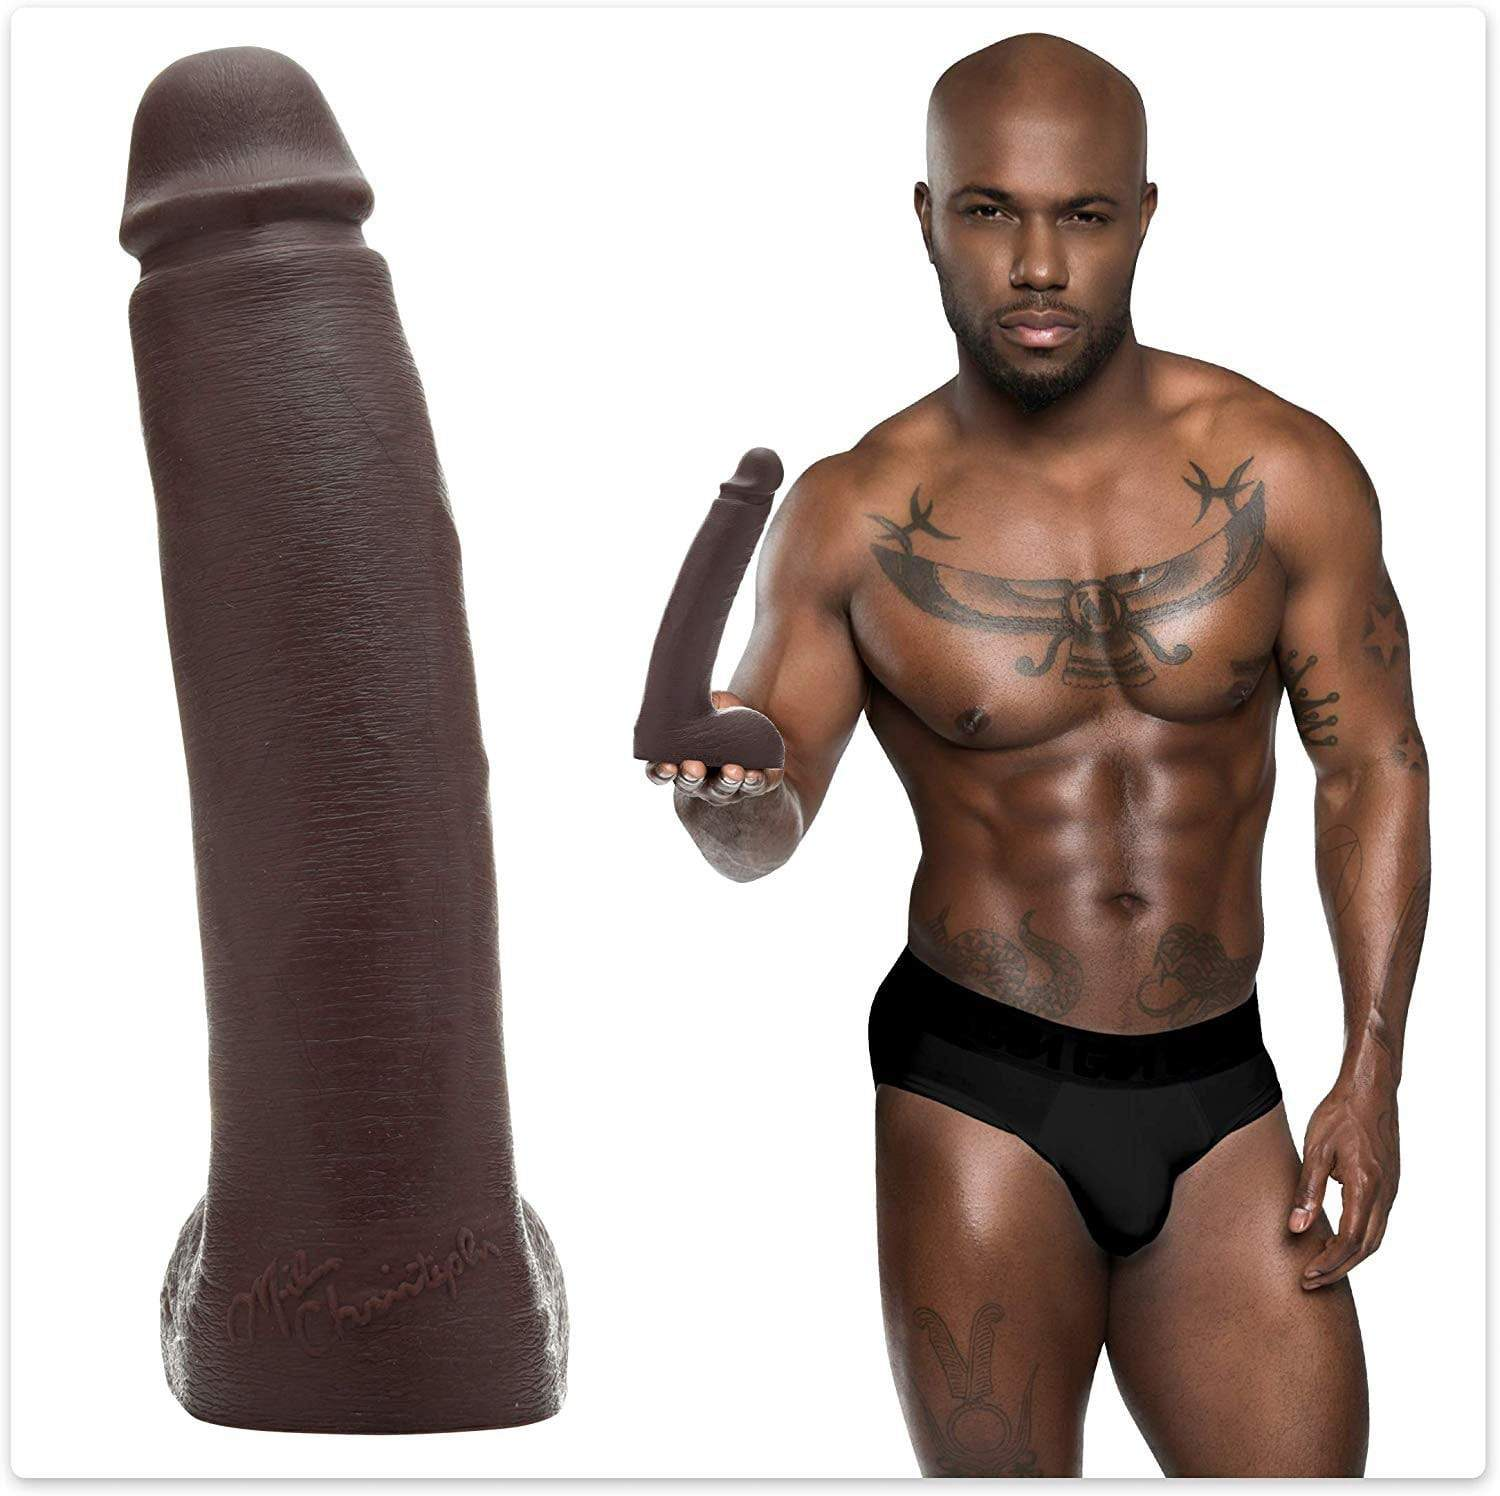 Fleshlight - Fleshjack Boys Milan Christopher Realistic Gay Dildo (Brown) | CherryAffairs Singapore